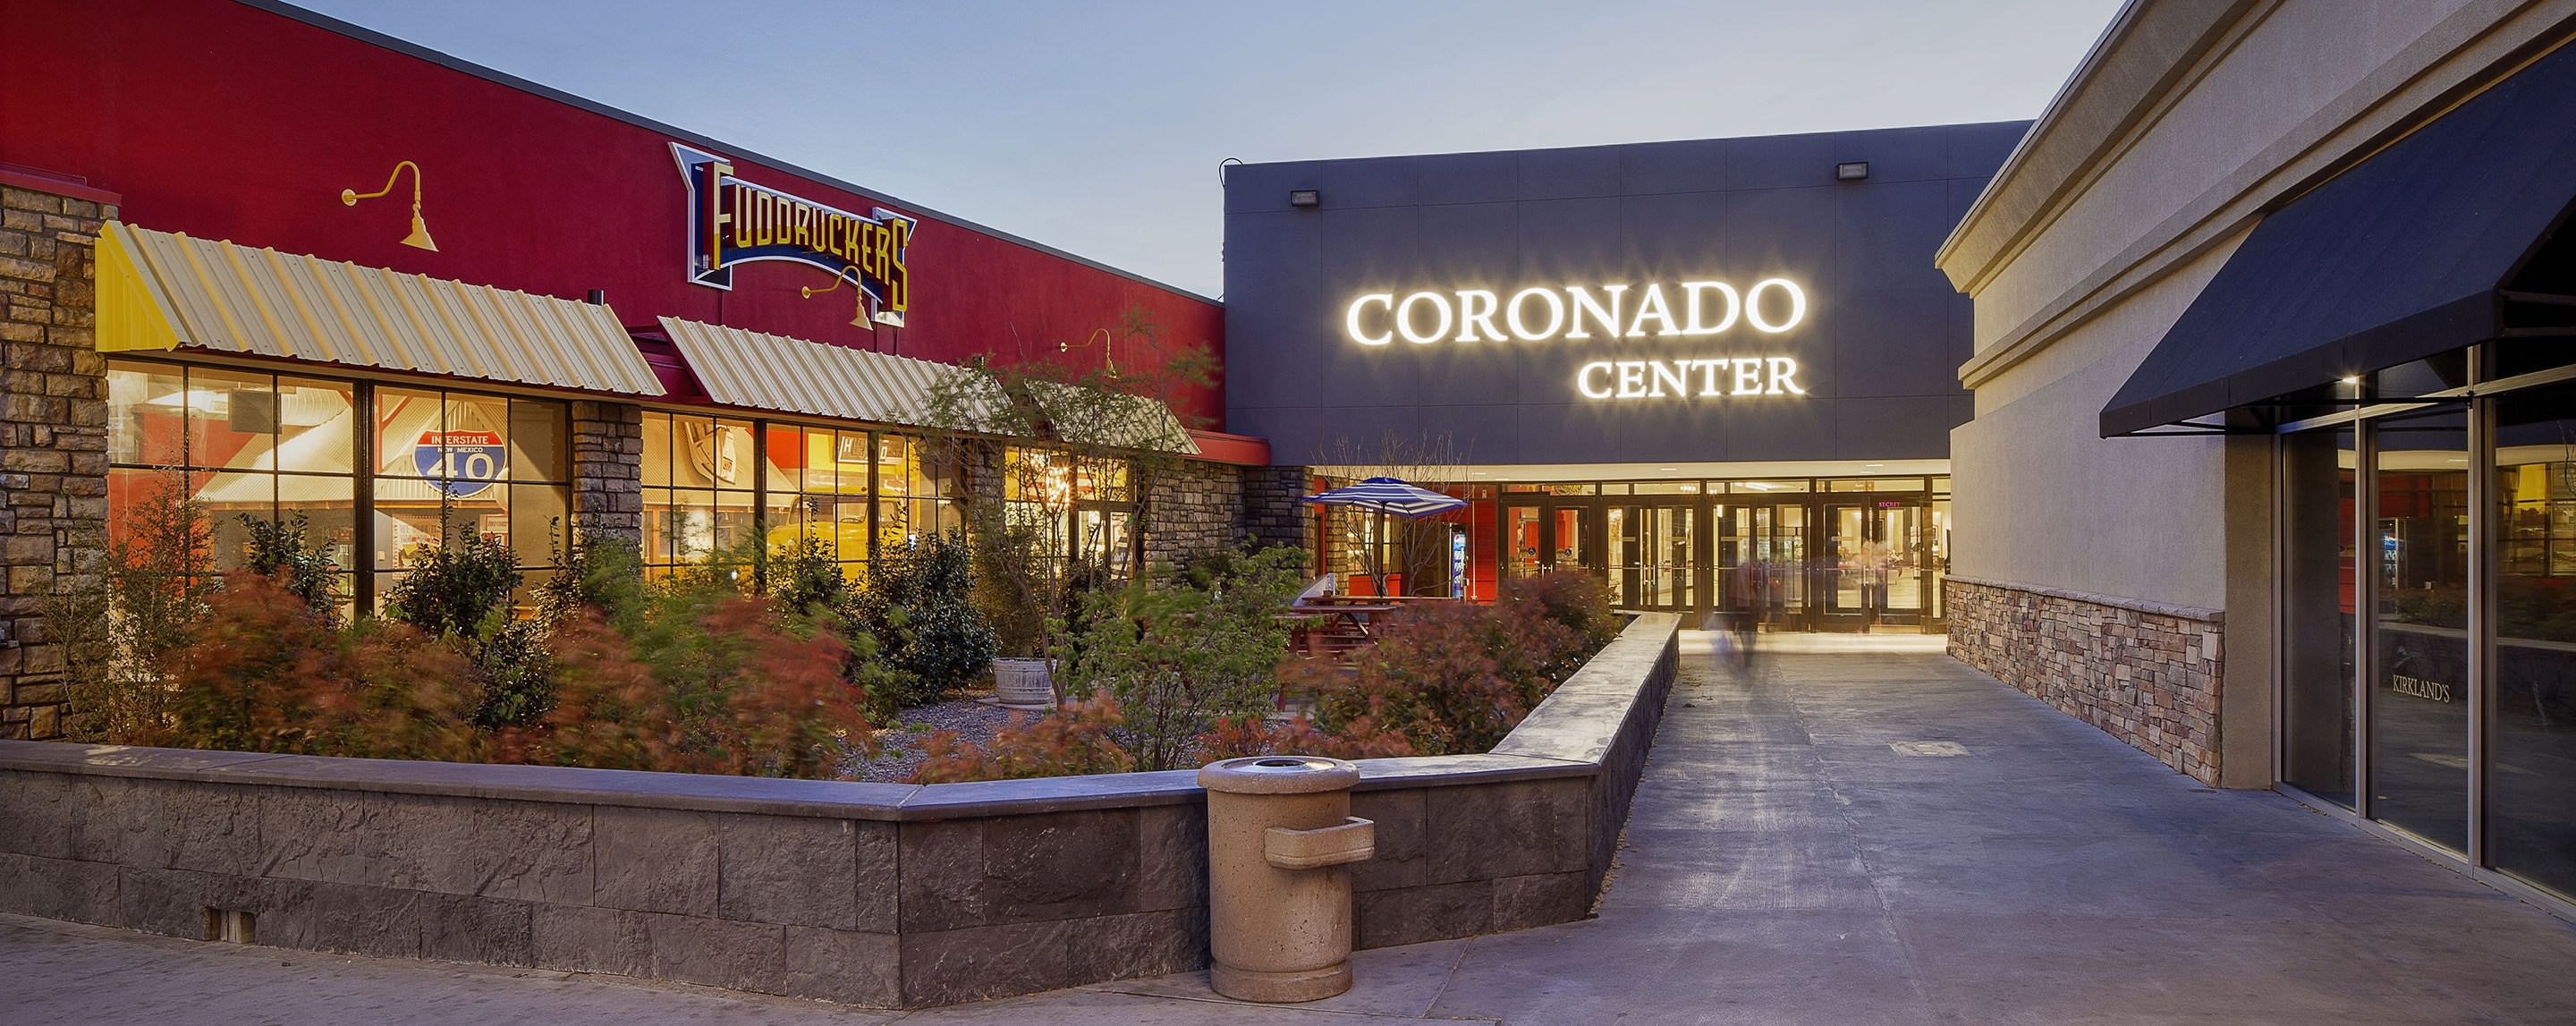 A sign for Coronado Center lights up a courtyard. A Kirland's store is visible.